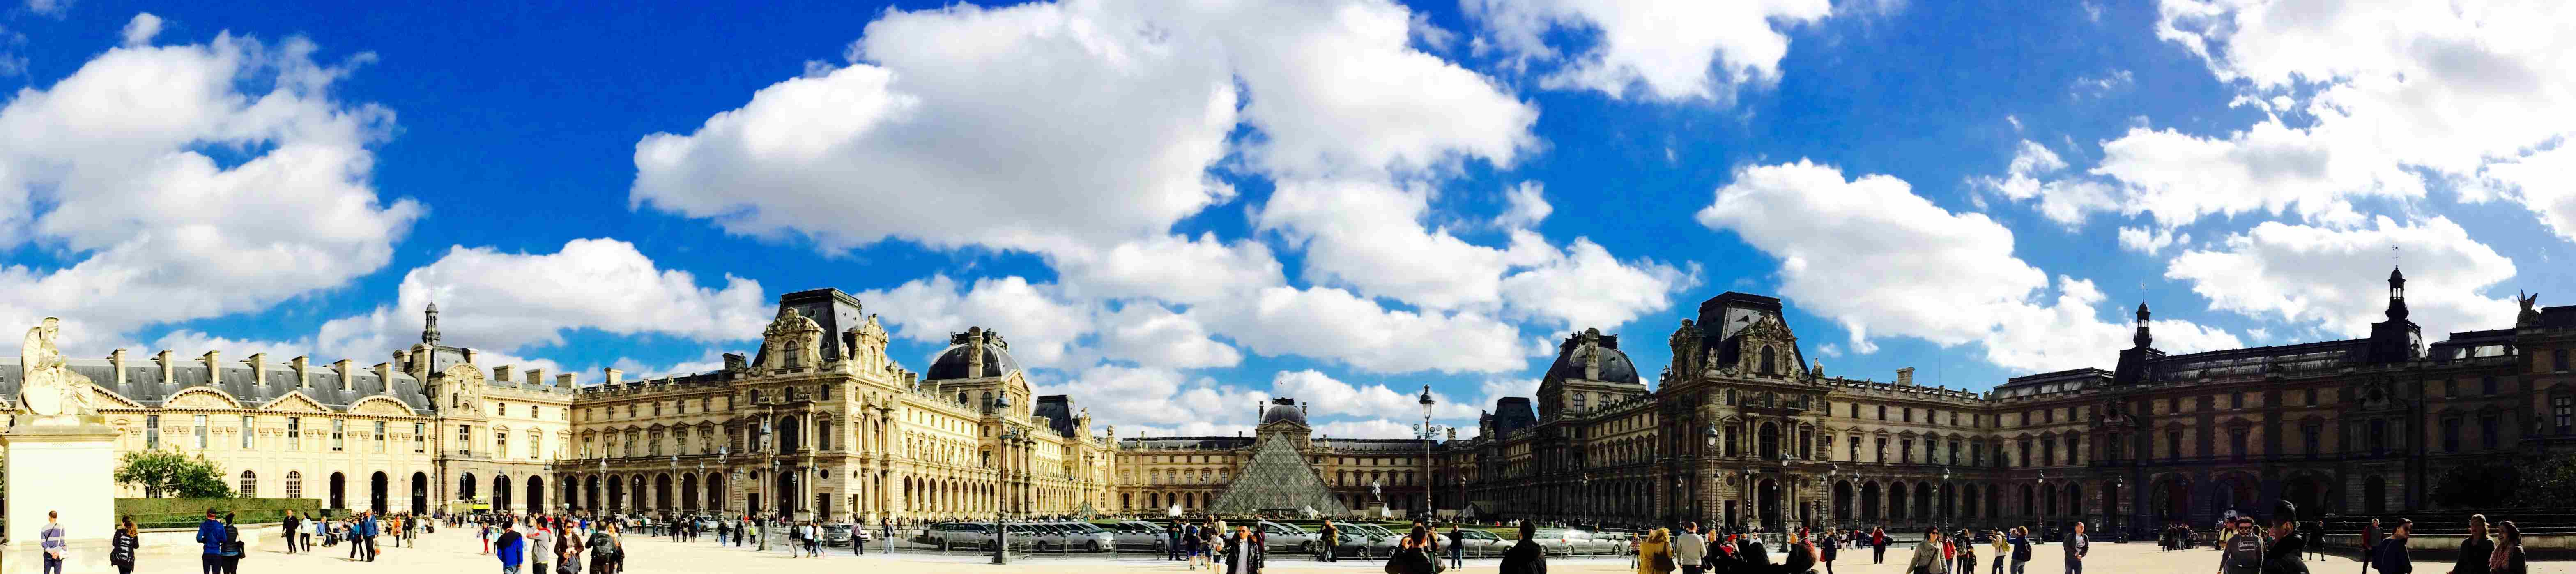 Louvre Palace Private tour by PARIS BY EMY